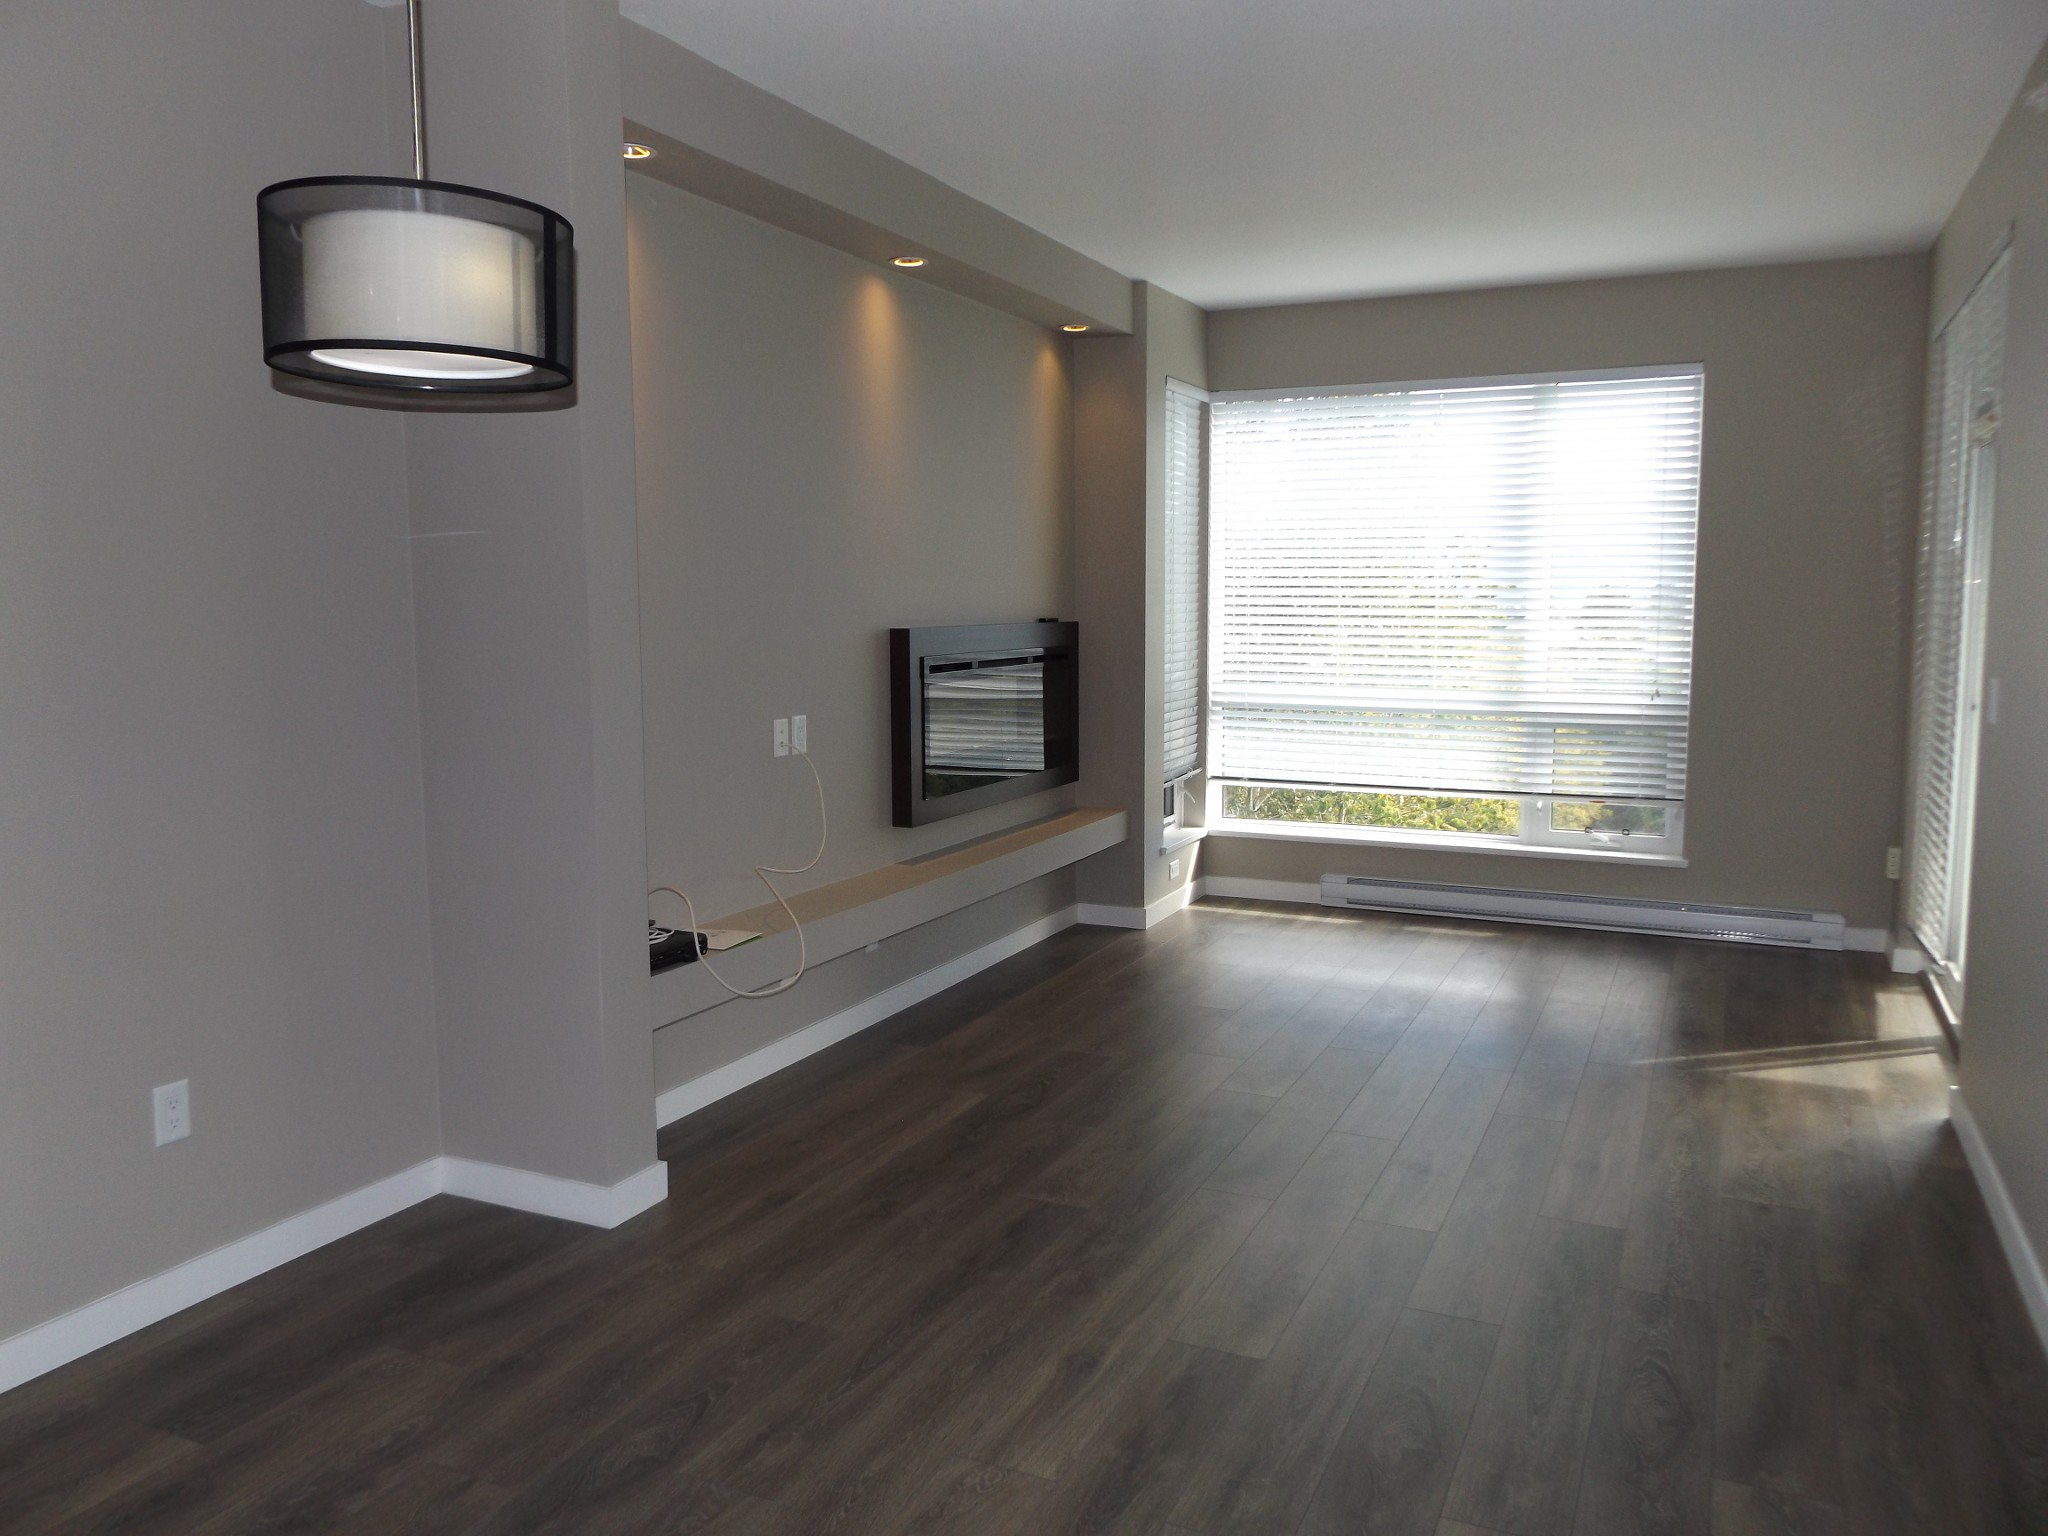 Photo 5: Photos: #308 2242 Whatcom Rd in Abbotsford: Abbotsford East Condo for rent